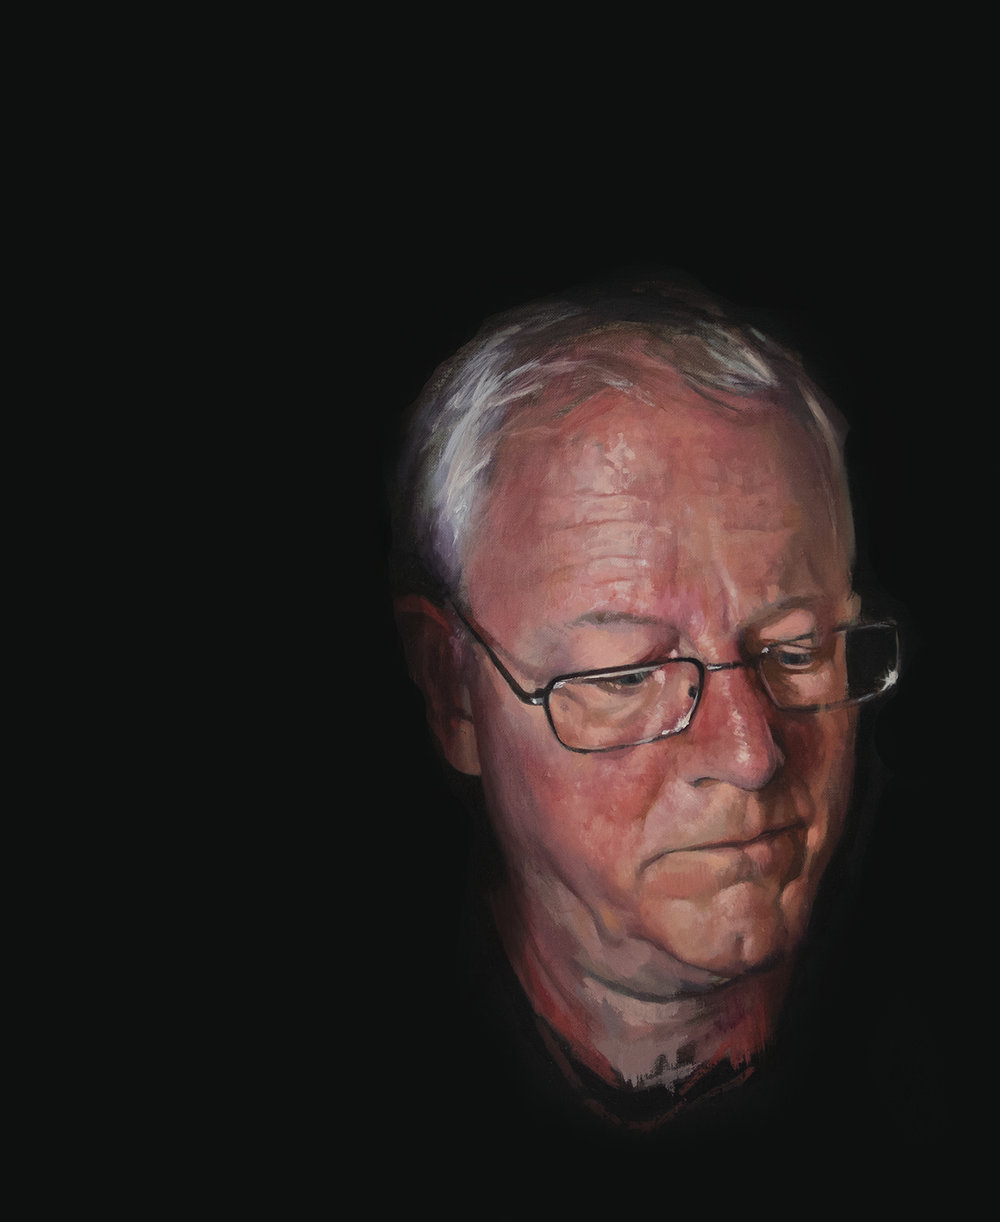 Thomas Wharton | Self Portrait at 65 | Oil on Linen | 18x22